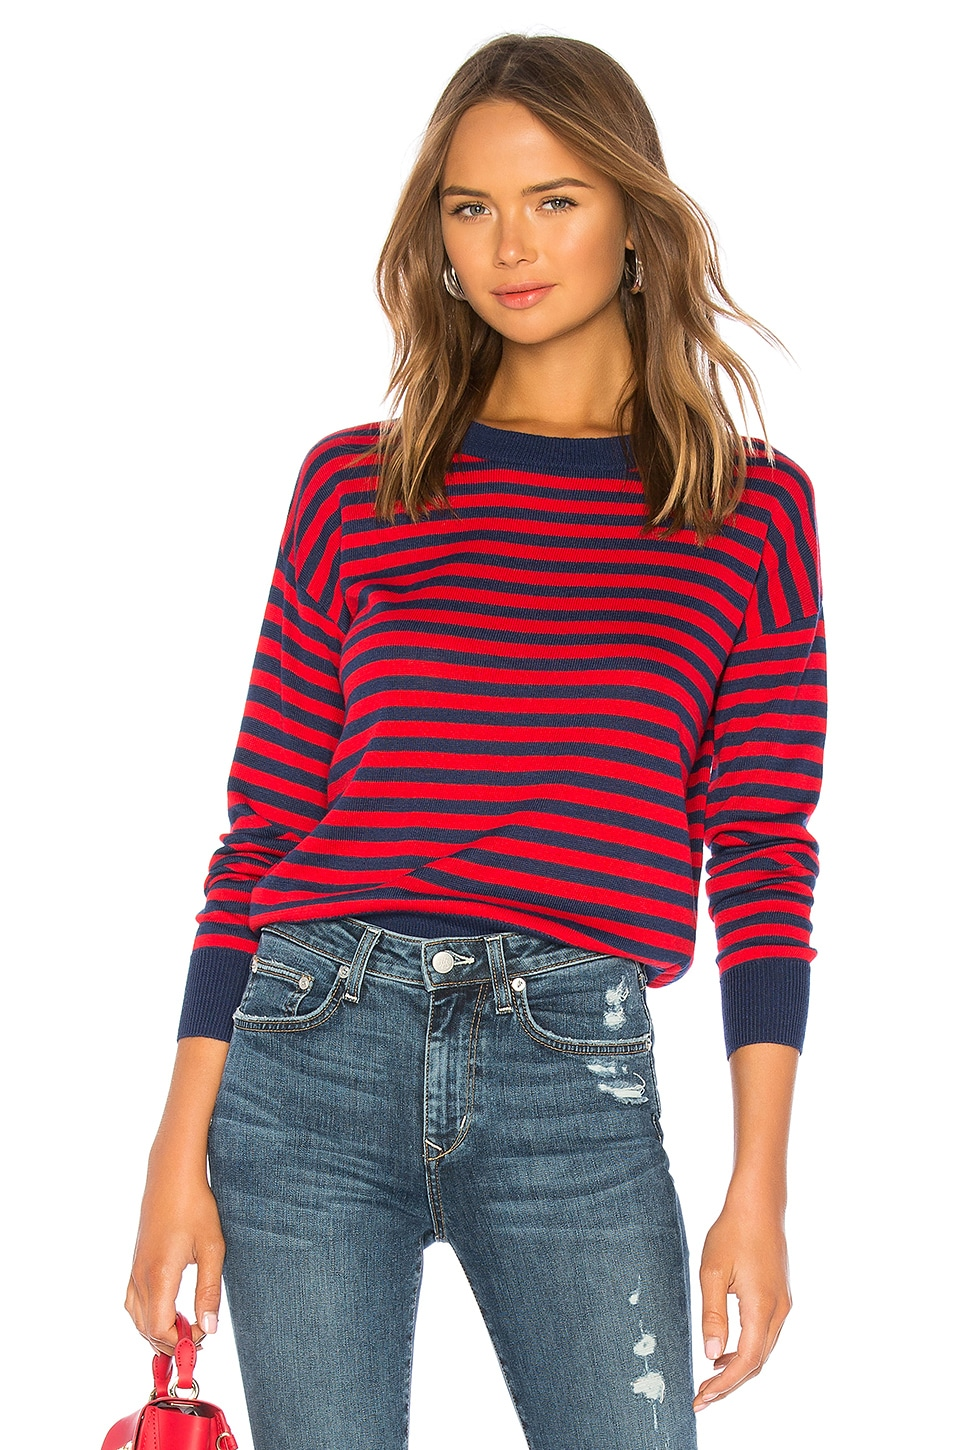 House of Harlow 1960 x REVOLVE Britt Sweater in Red Stripe